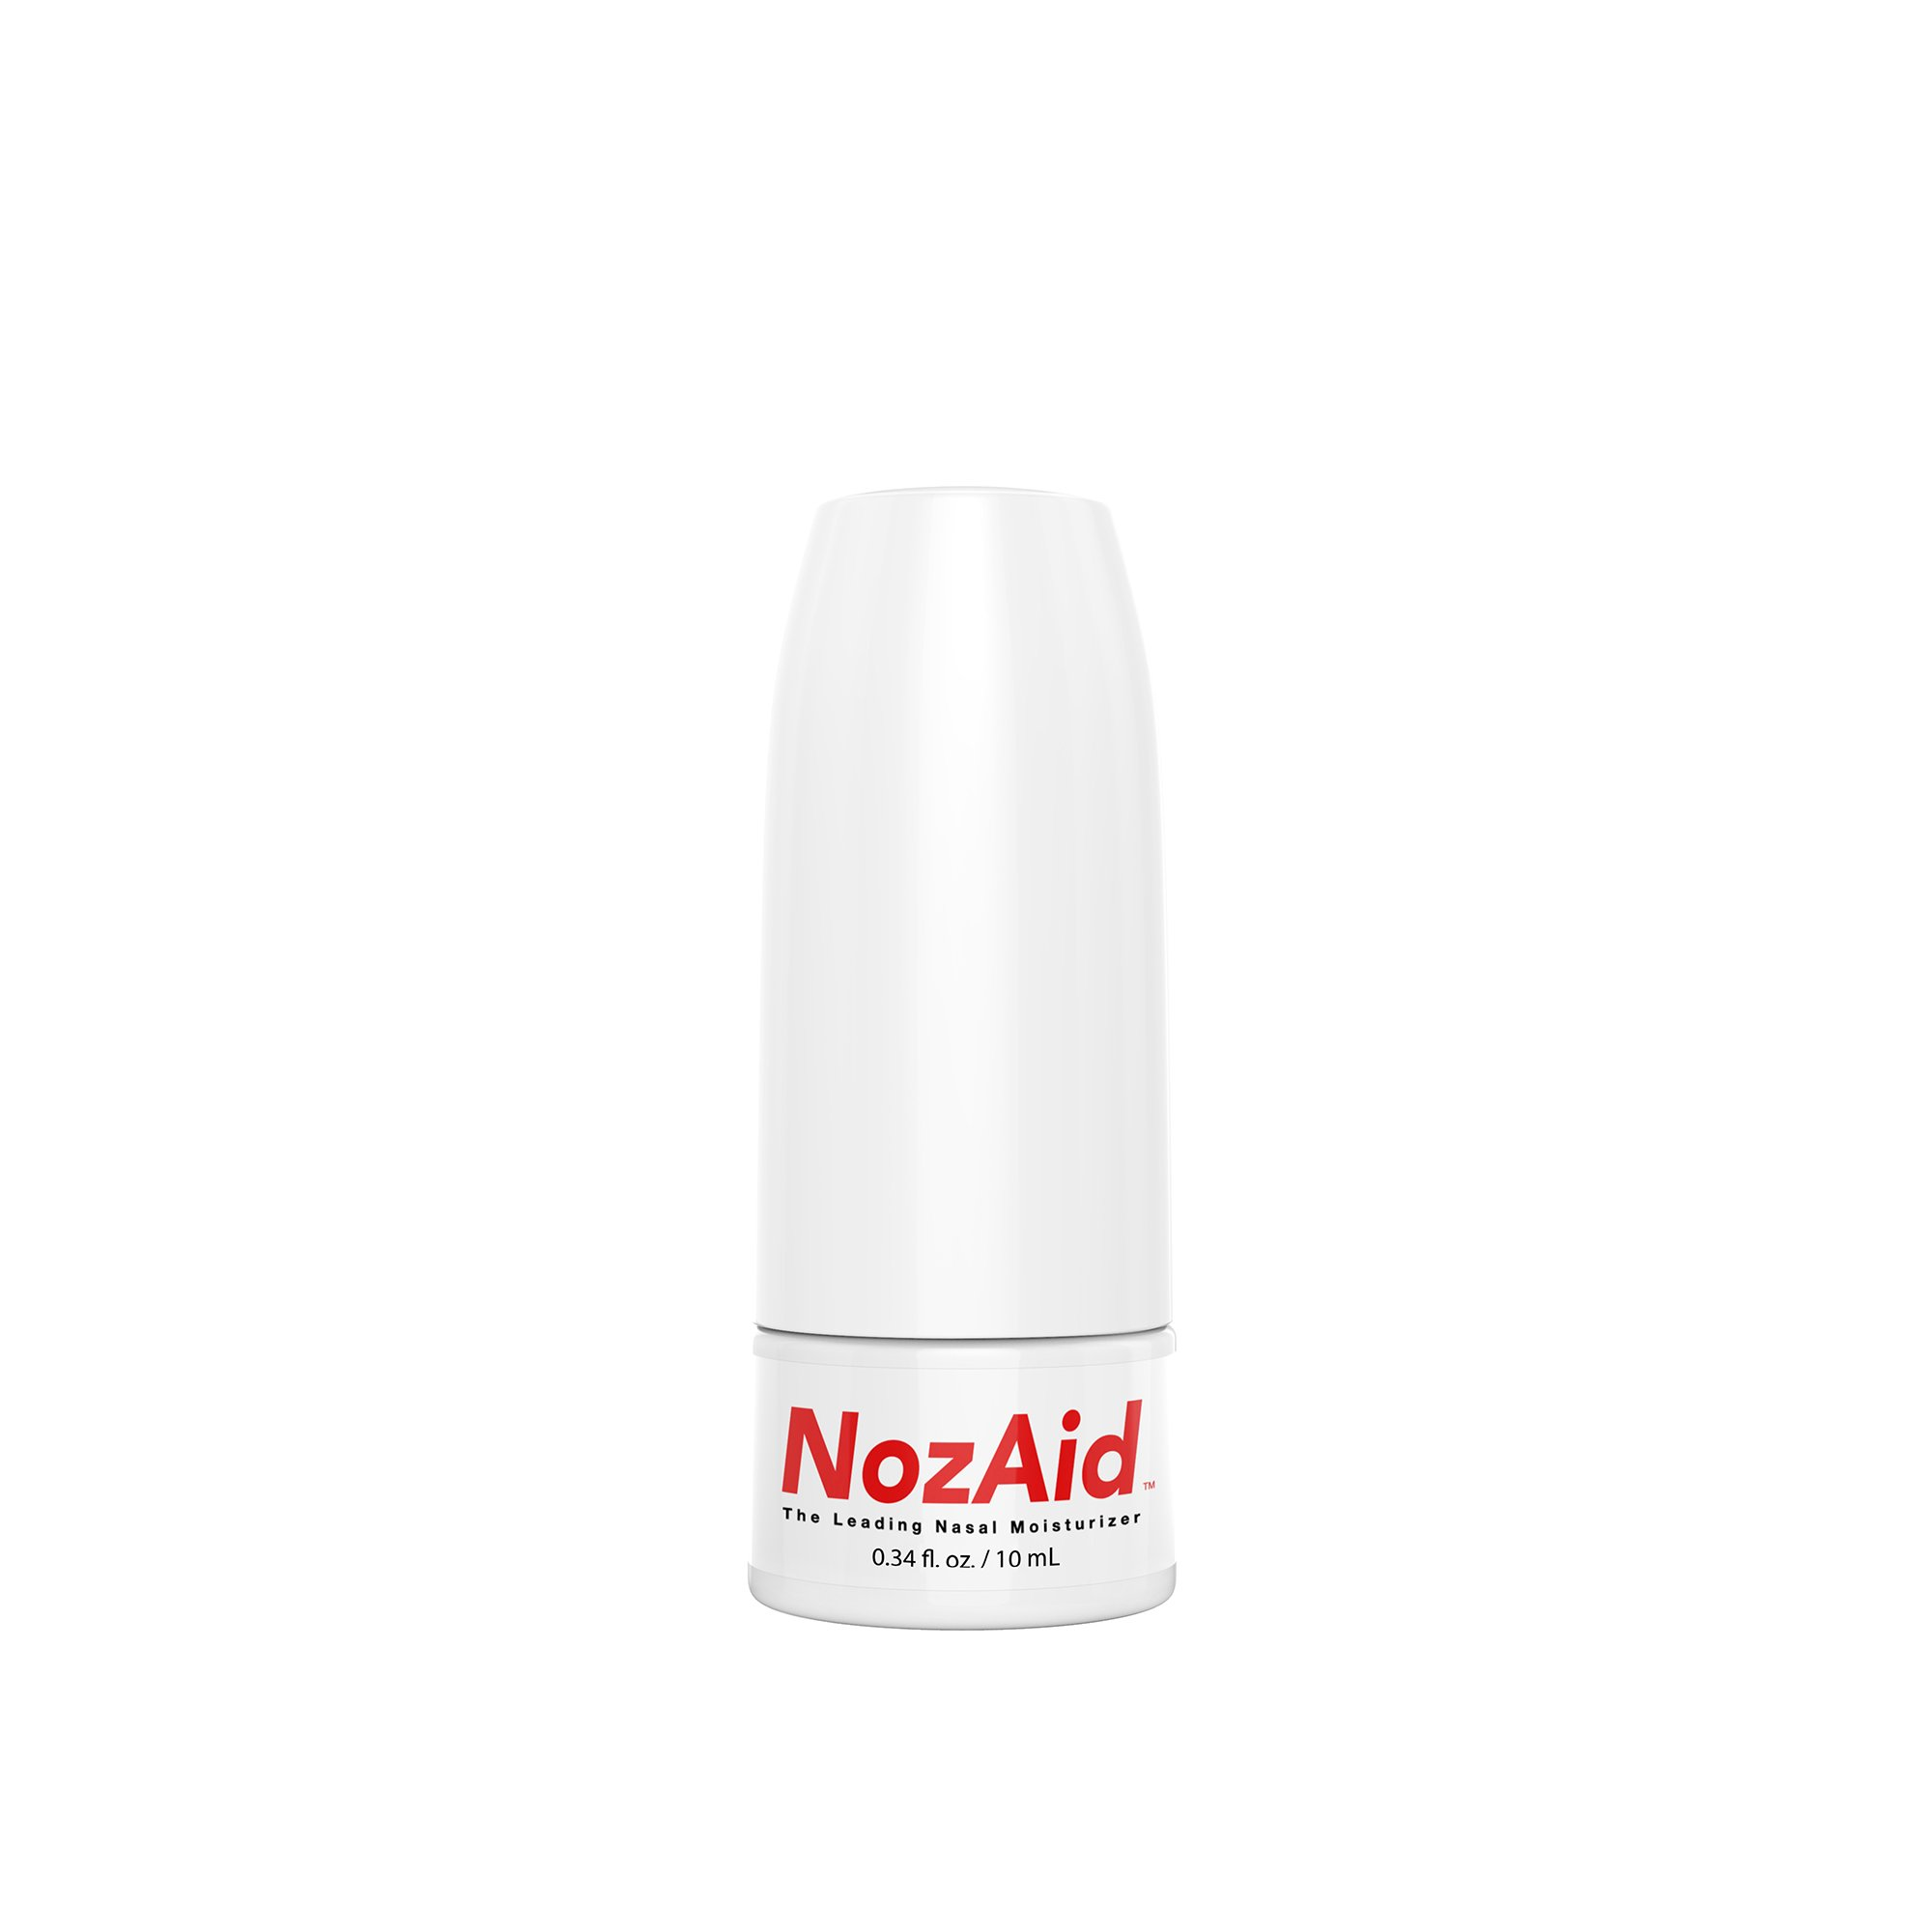 Nasal Spray Moisturizer with Sesame Oil .34 Ounce - Moisturizing Lubricant for Dry, Crusty, Cracked, Stuffy Nose Relief, Nosebleeds, Clear Breathing - Fragrance and Preservative Free by NozAid by NozAid (Image #5)